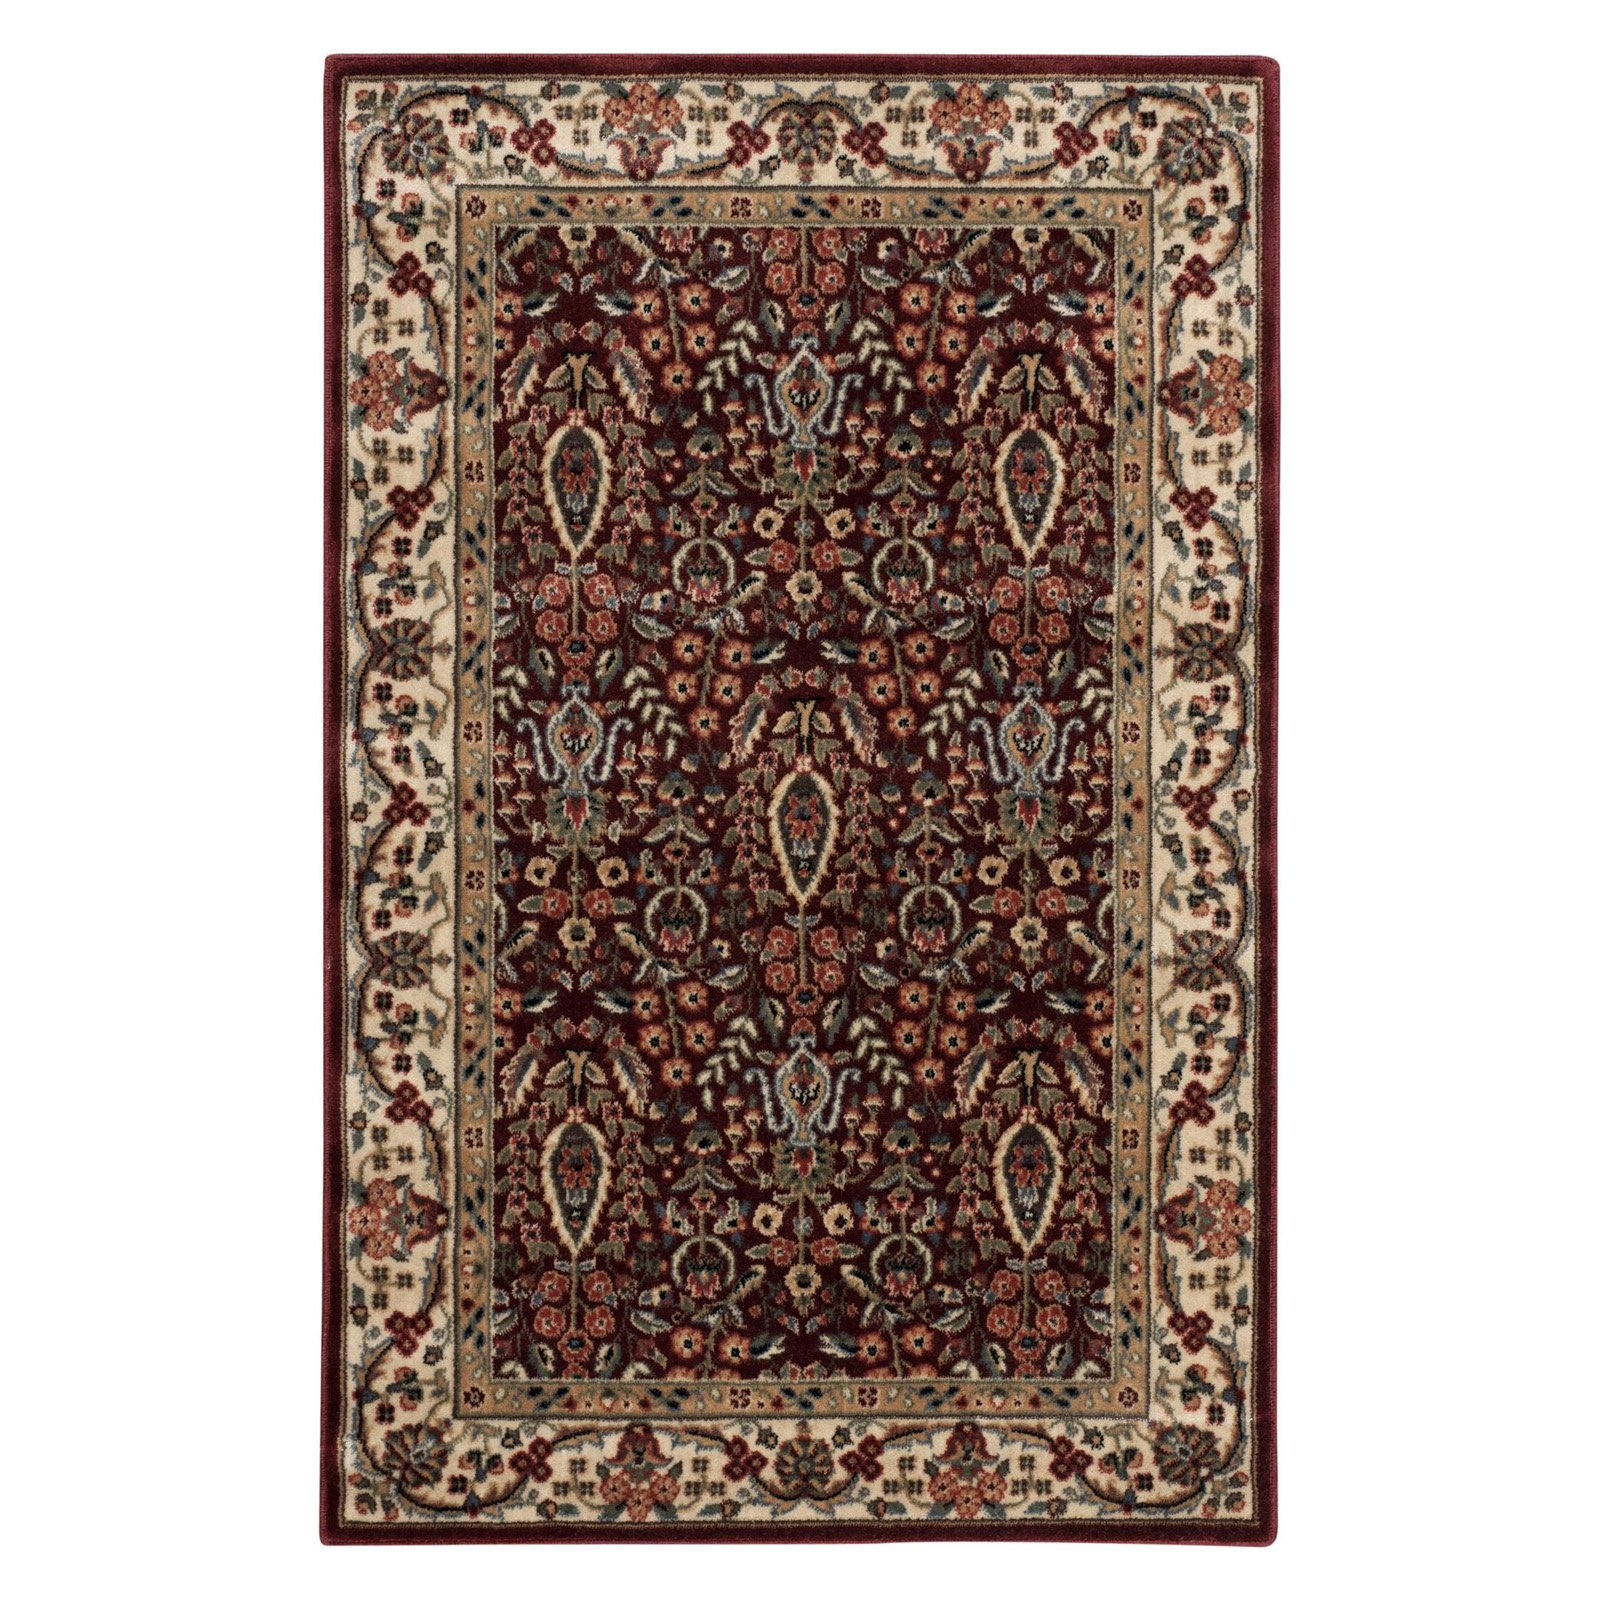 Persian Arts BD08 Runner Rug by Nourison